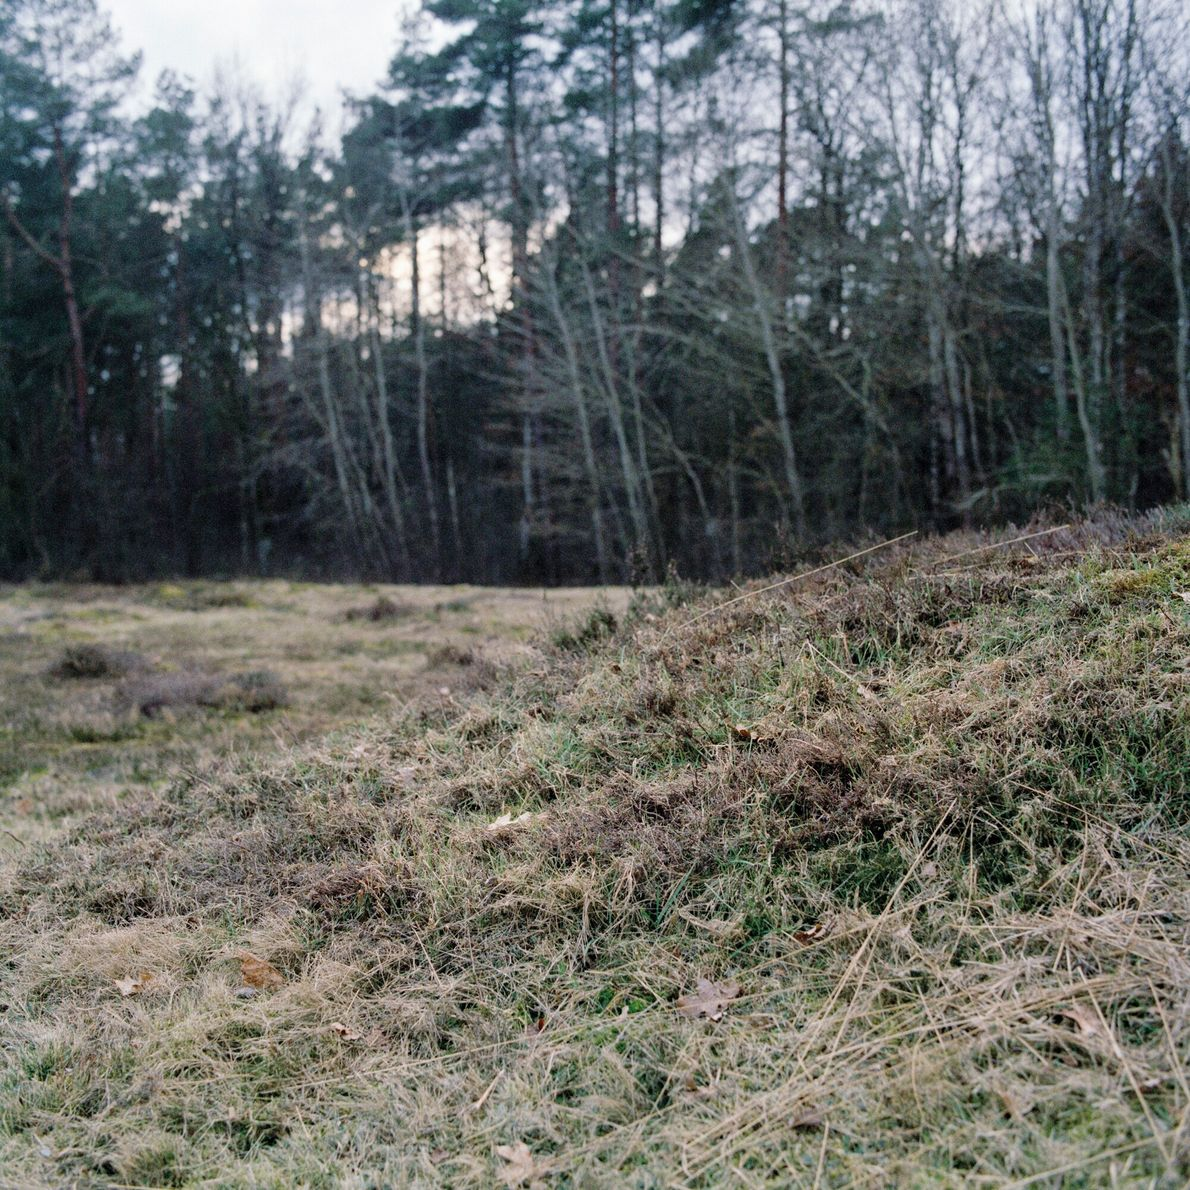 Germany, 2017: A mass grave at Bergen-Belsen concentration camp. In total over 50,000 people died at ...